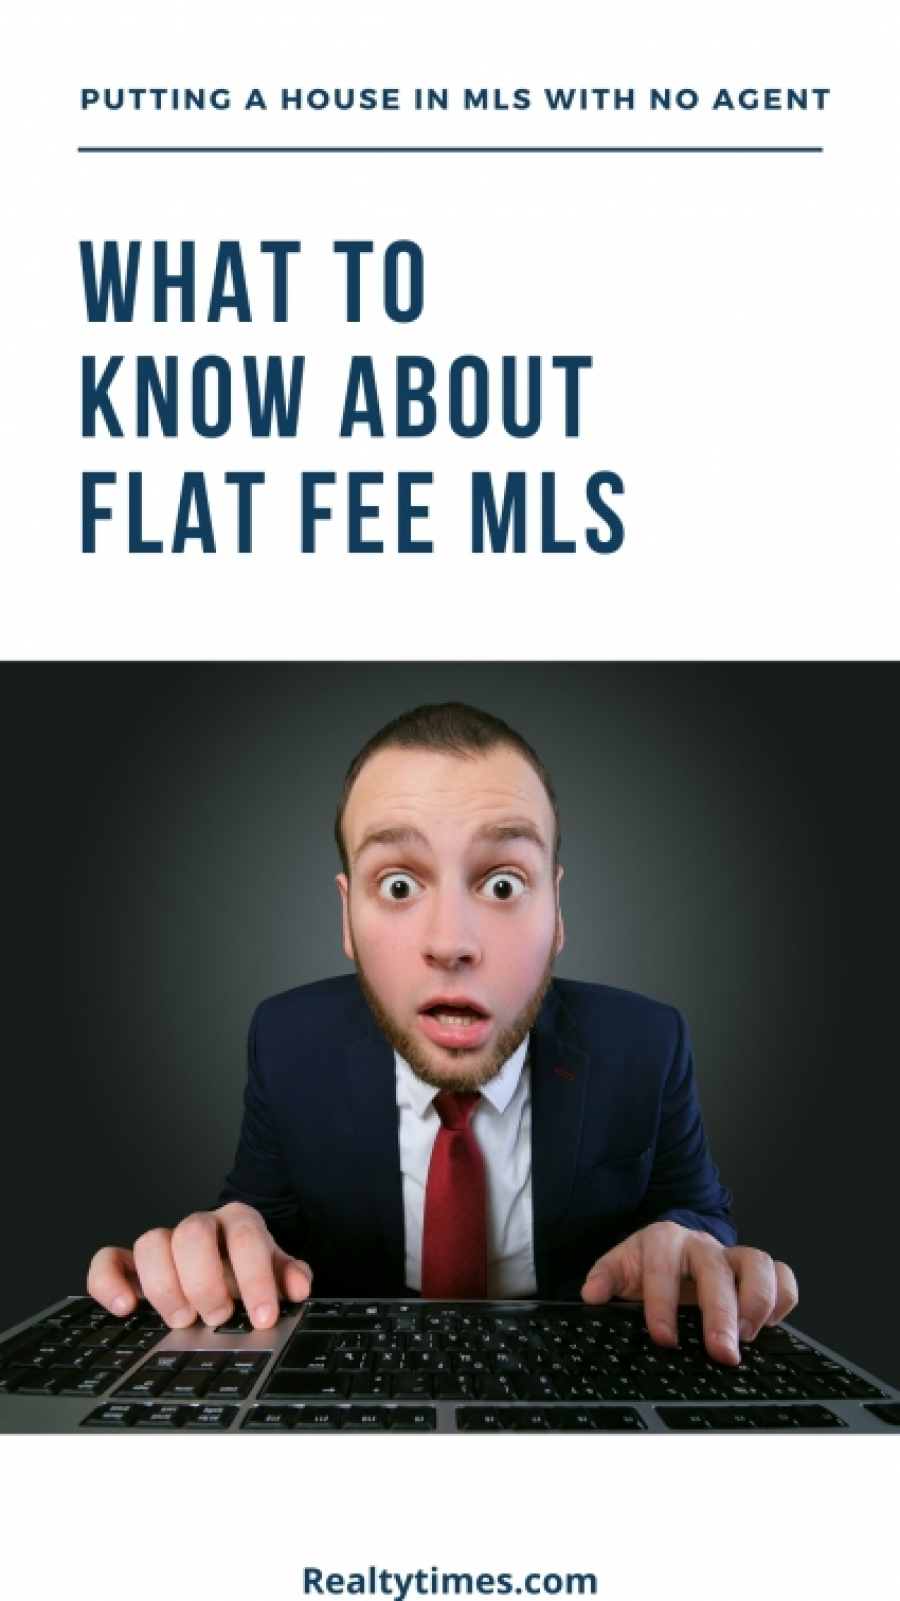 What are the advantages and disadvantages of flat fee MLS?